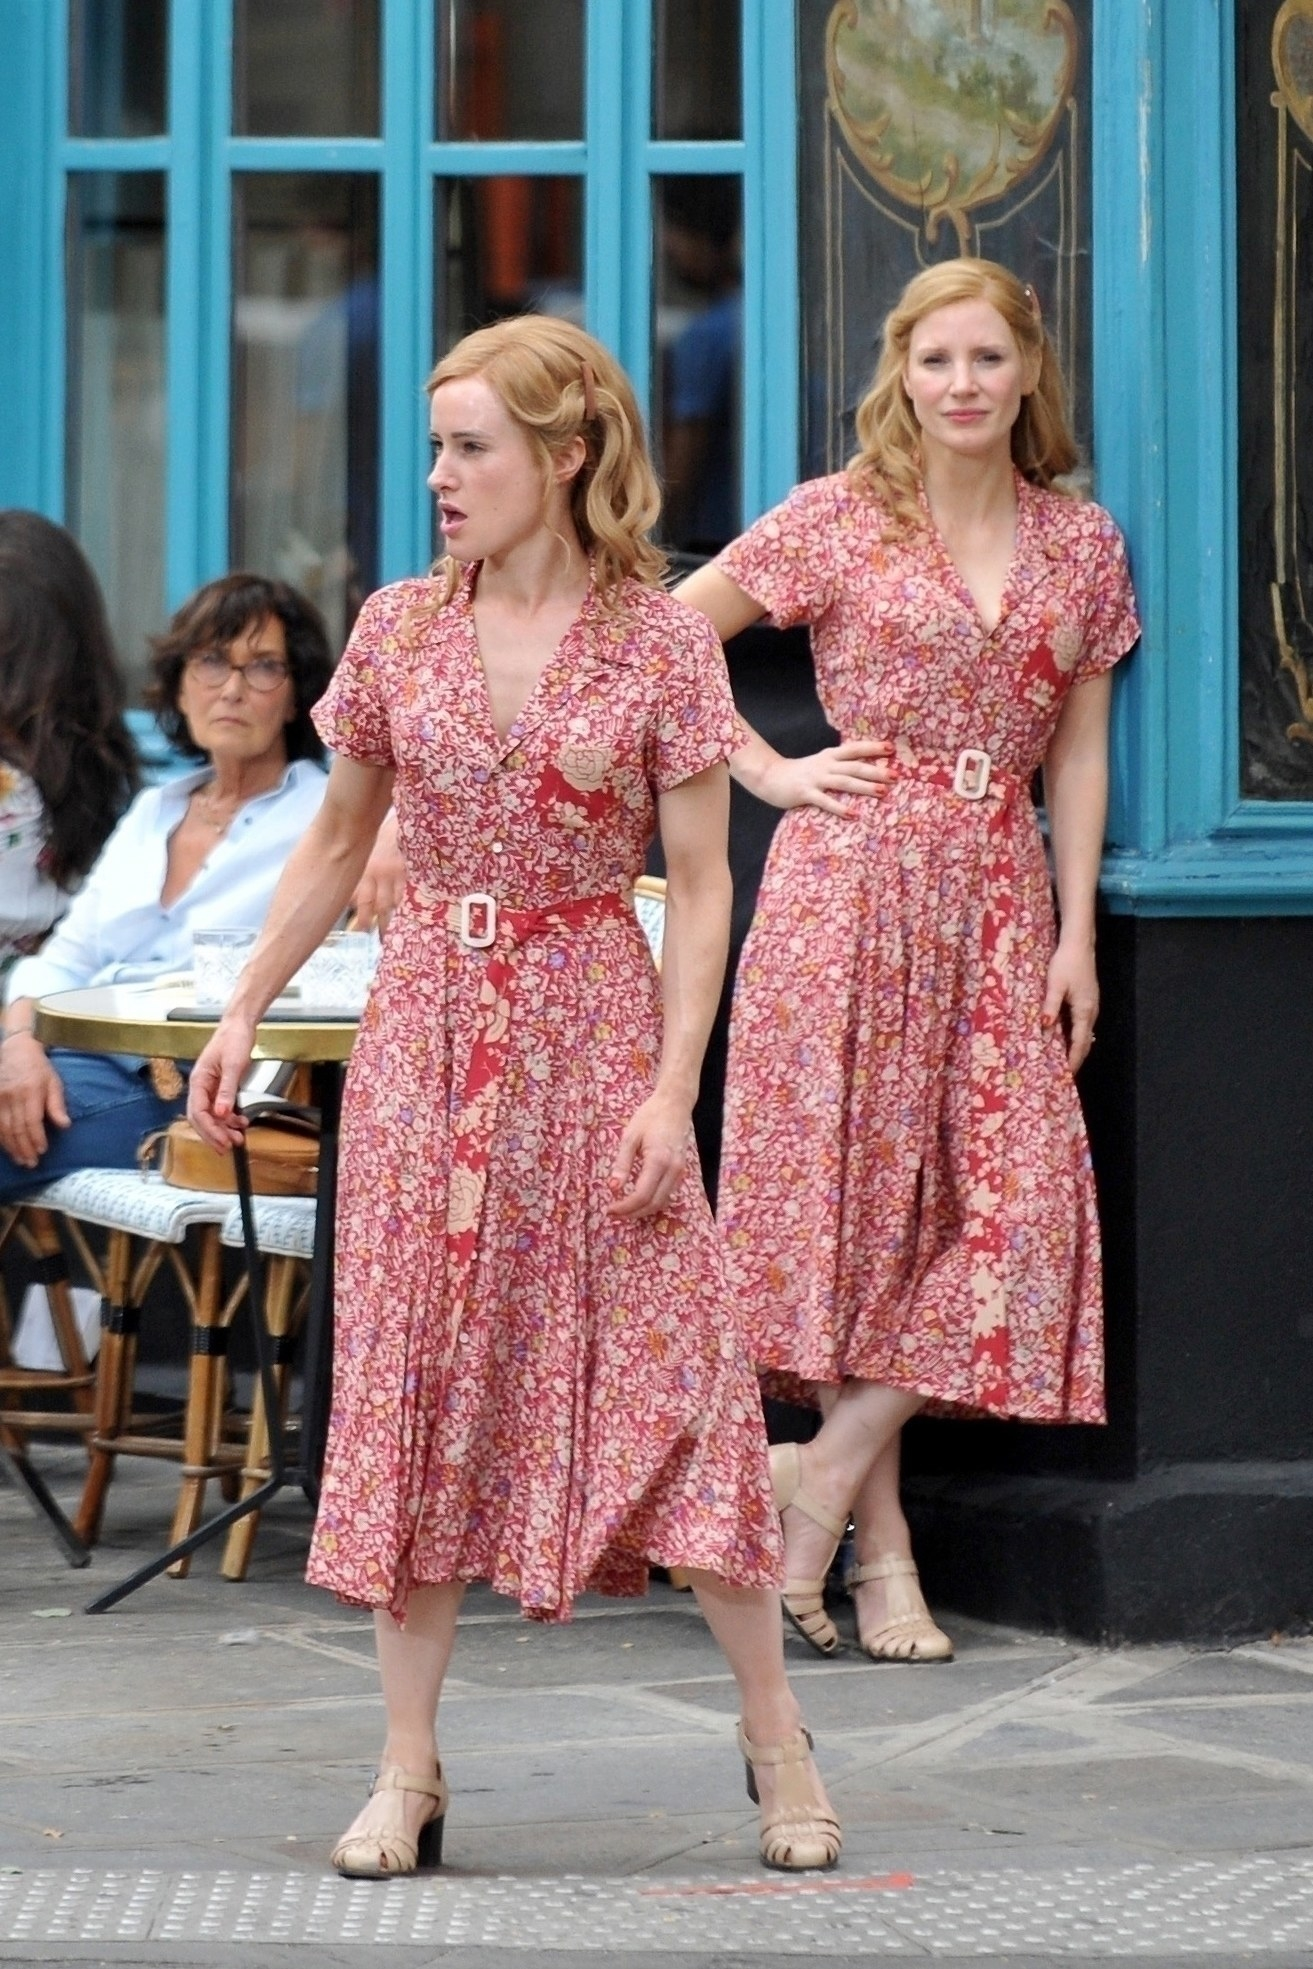 Jessica Chastain and her stunt double filming